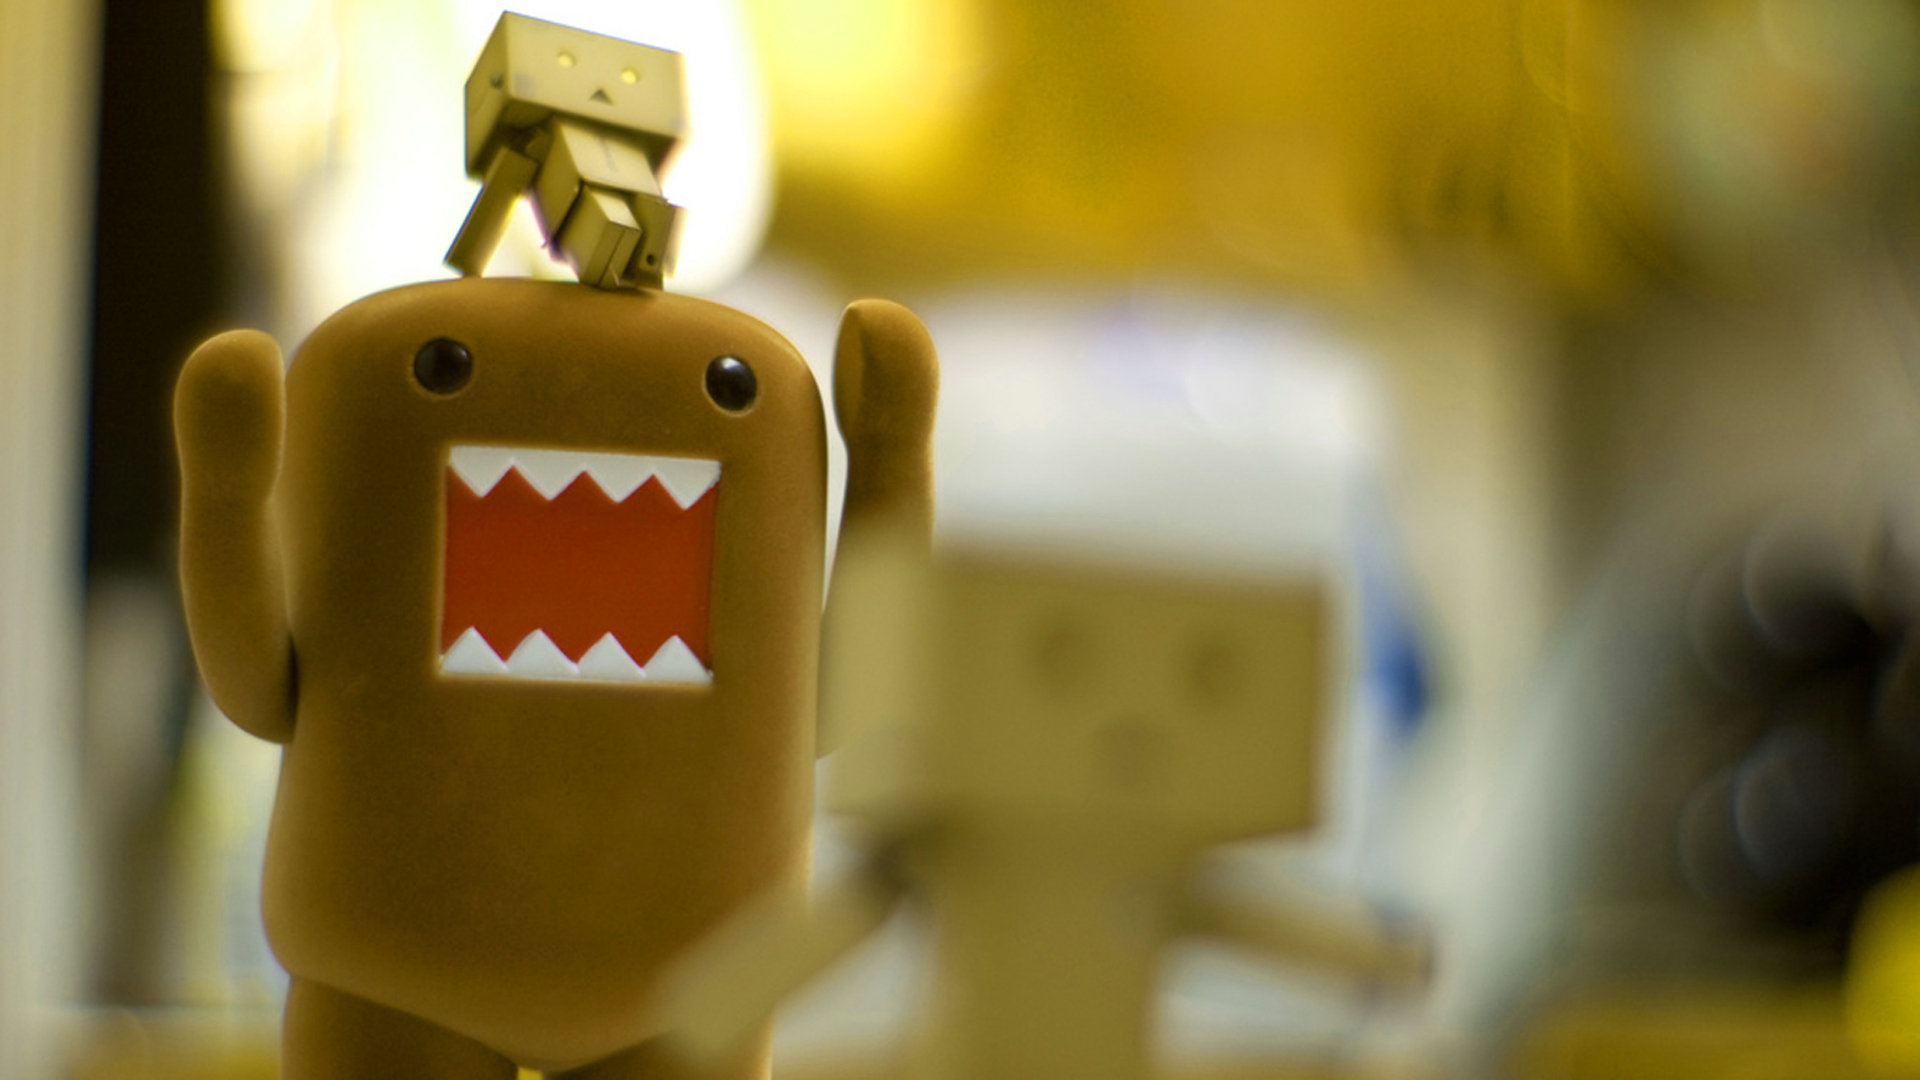 Danbo Domo Wallpaper Cute Free